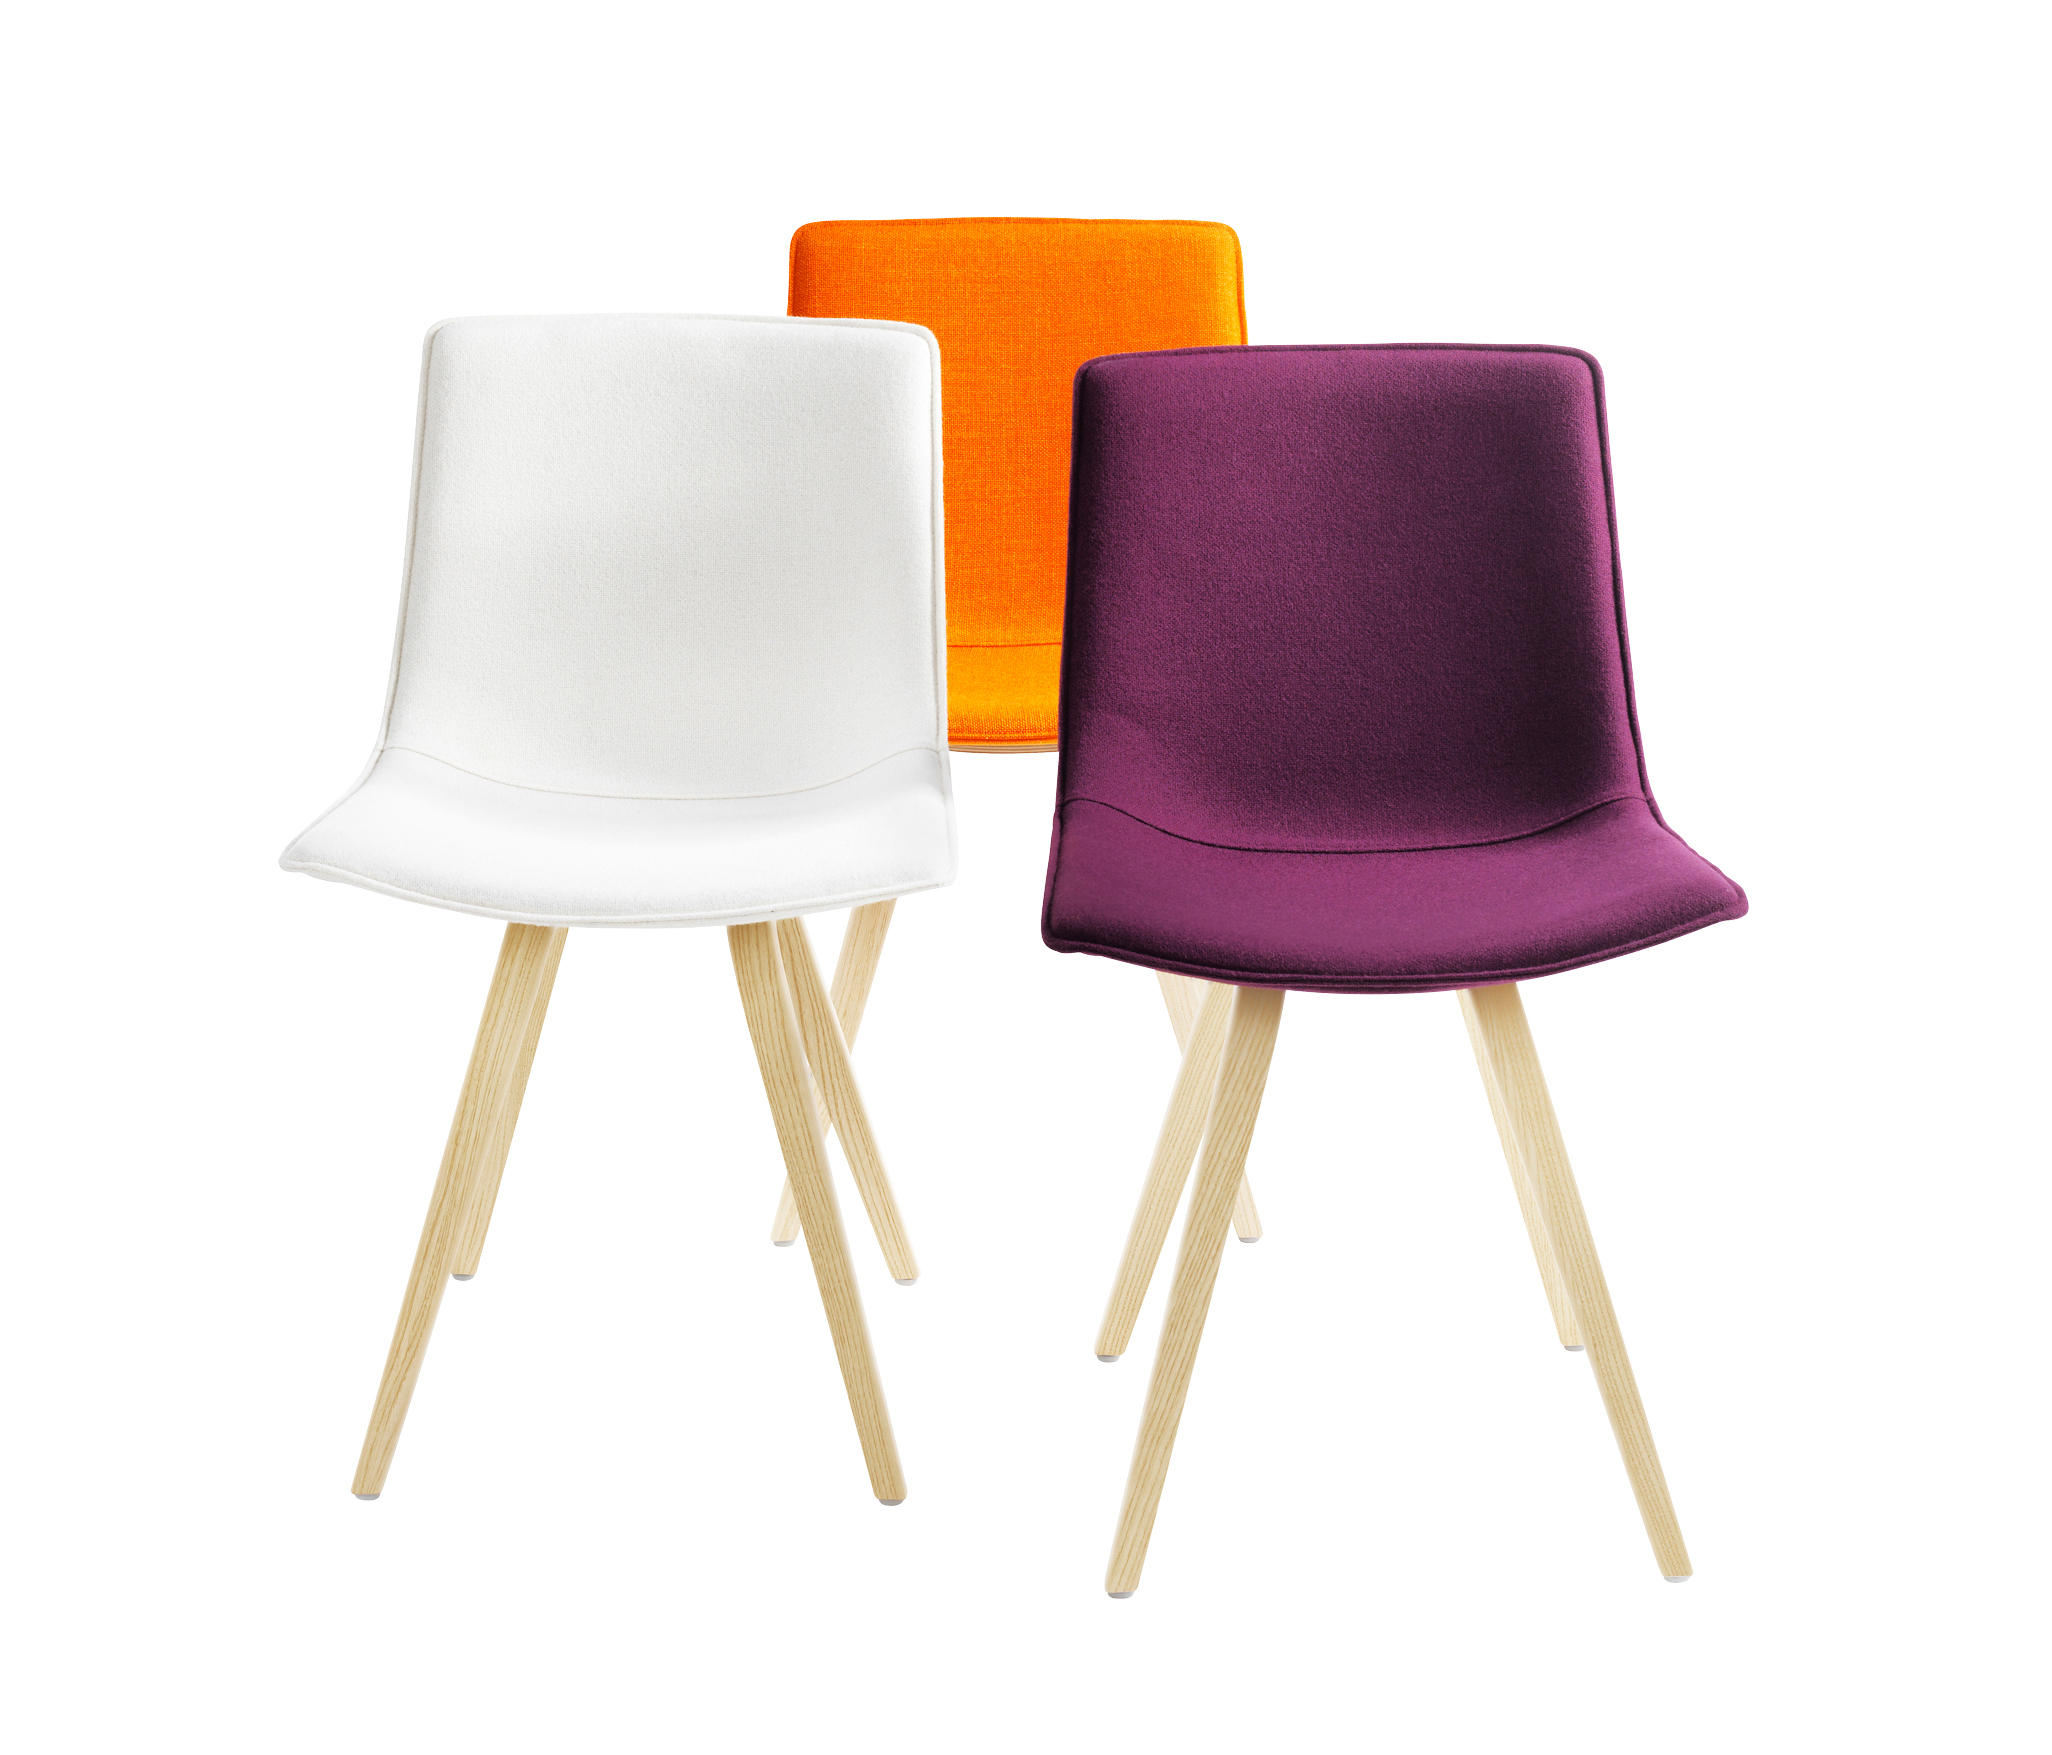 COMET SPORT CHAIR Restaurant chairs from Lammhults Architonic